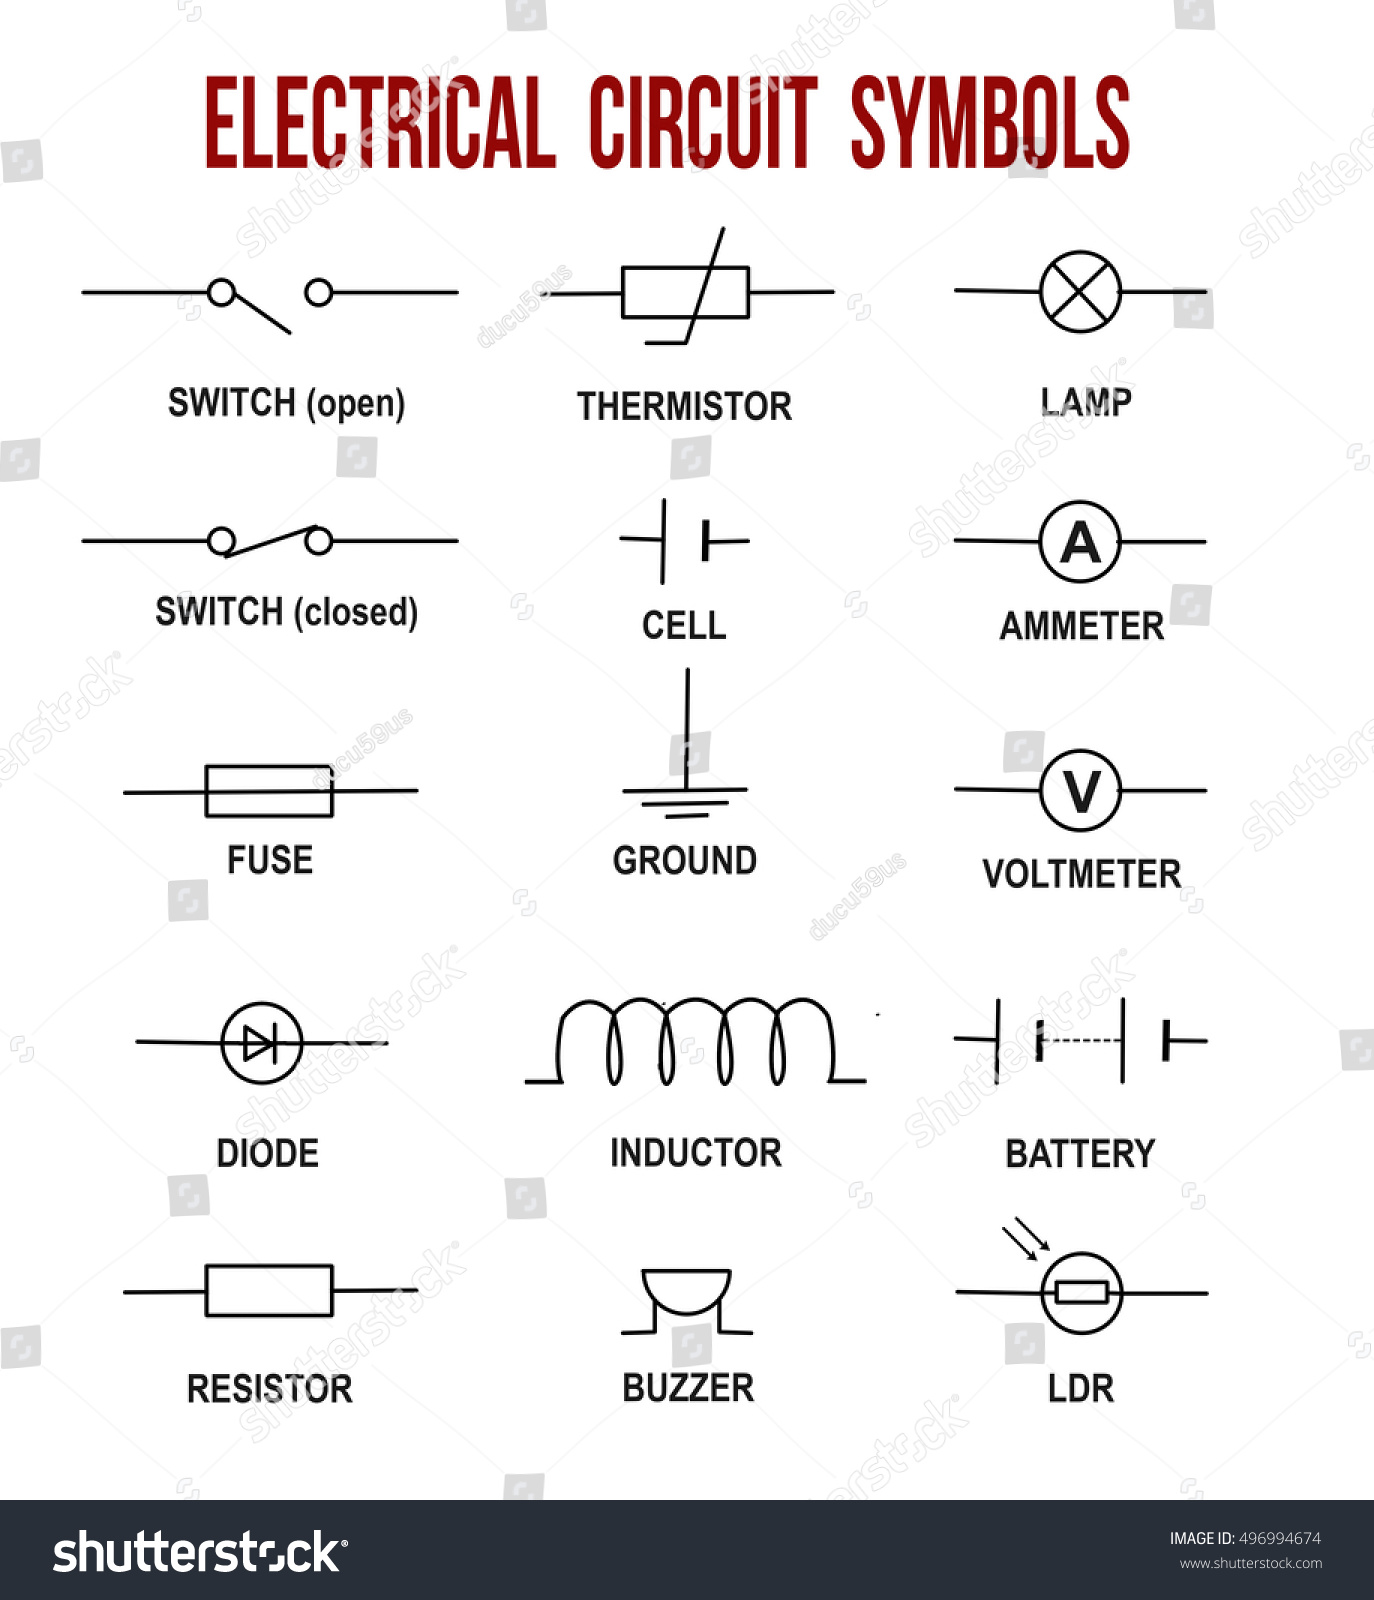 Electrical Circuit Symbols On White Background Stock Vector ...